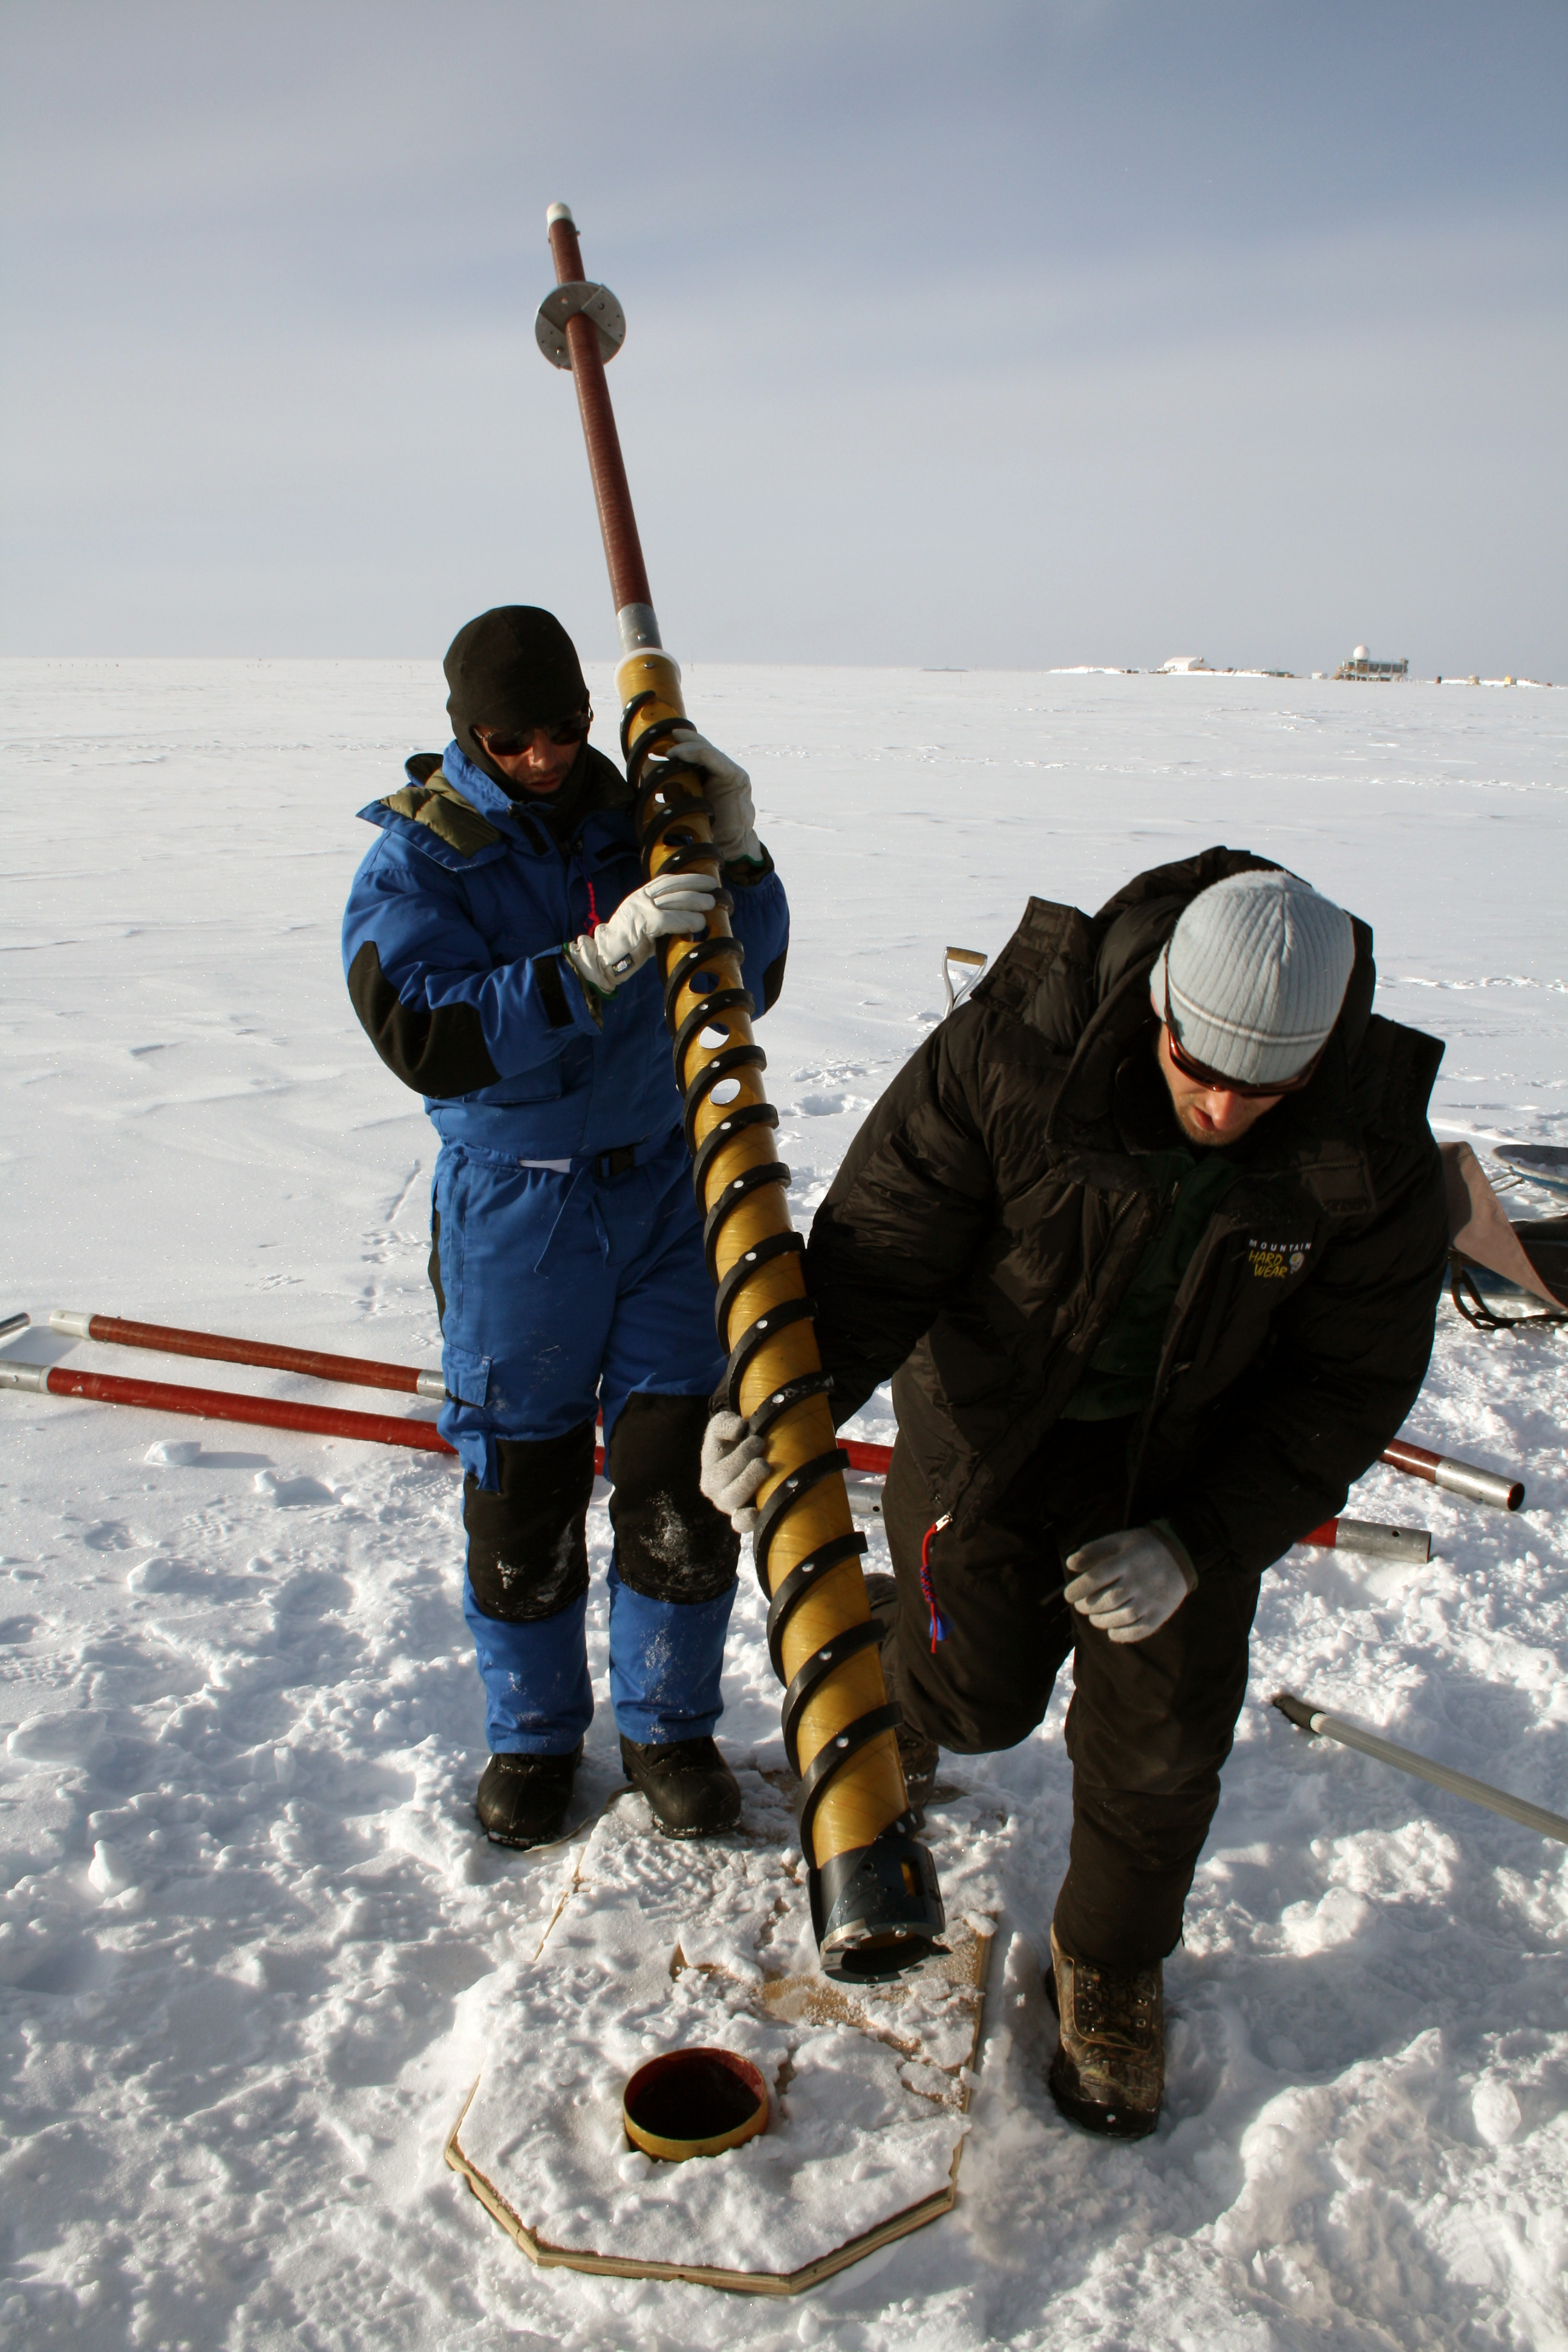 A scientist operates a hand auger outside of Summit Station, Greenland